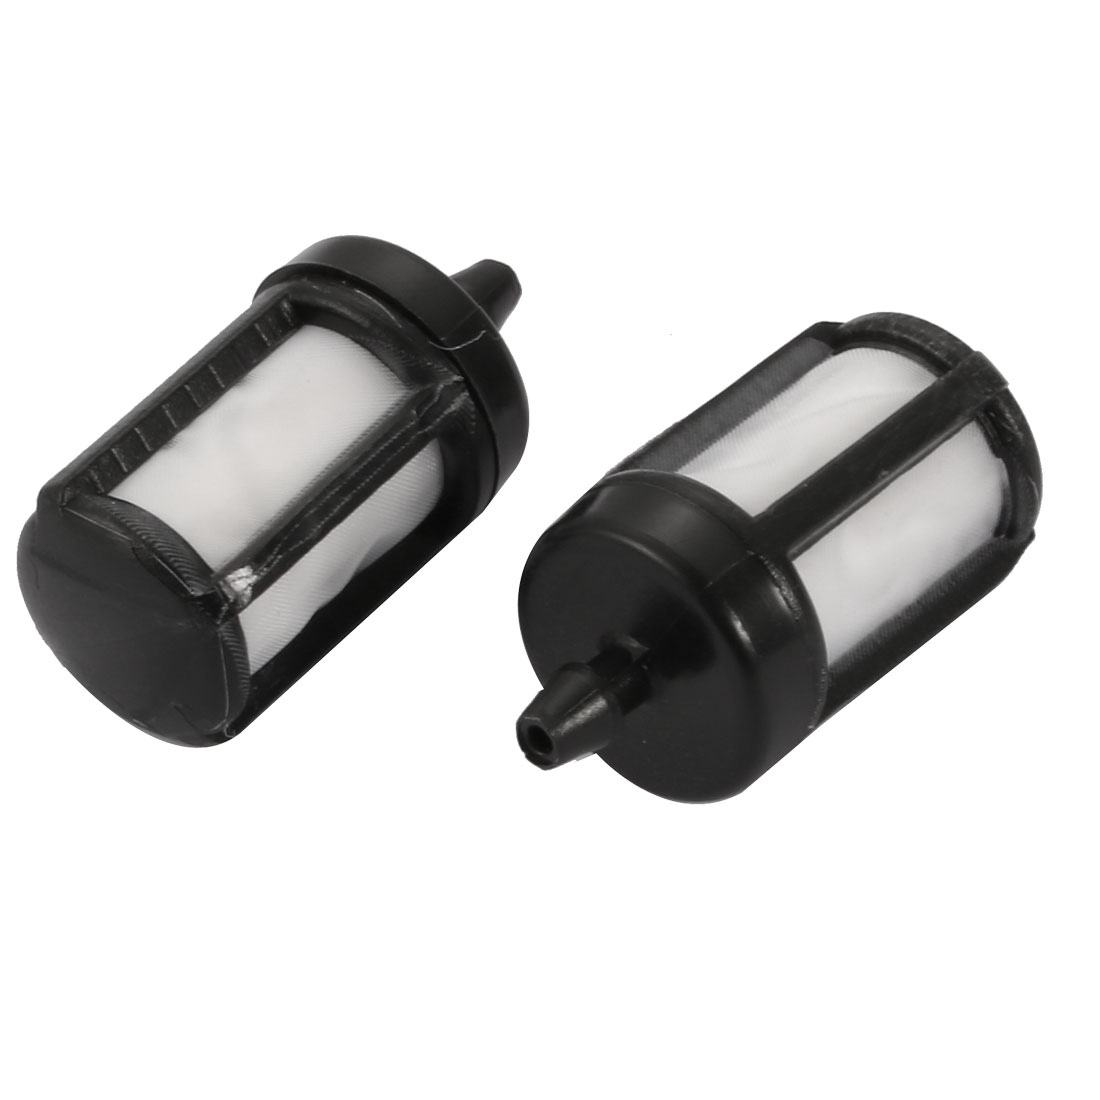 2Pcs Fuel Filter Replacement For 2013B Weedeater Chainsaw Trimmer Edger Blower